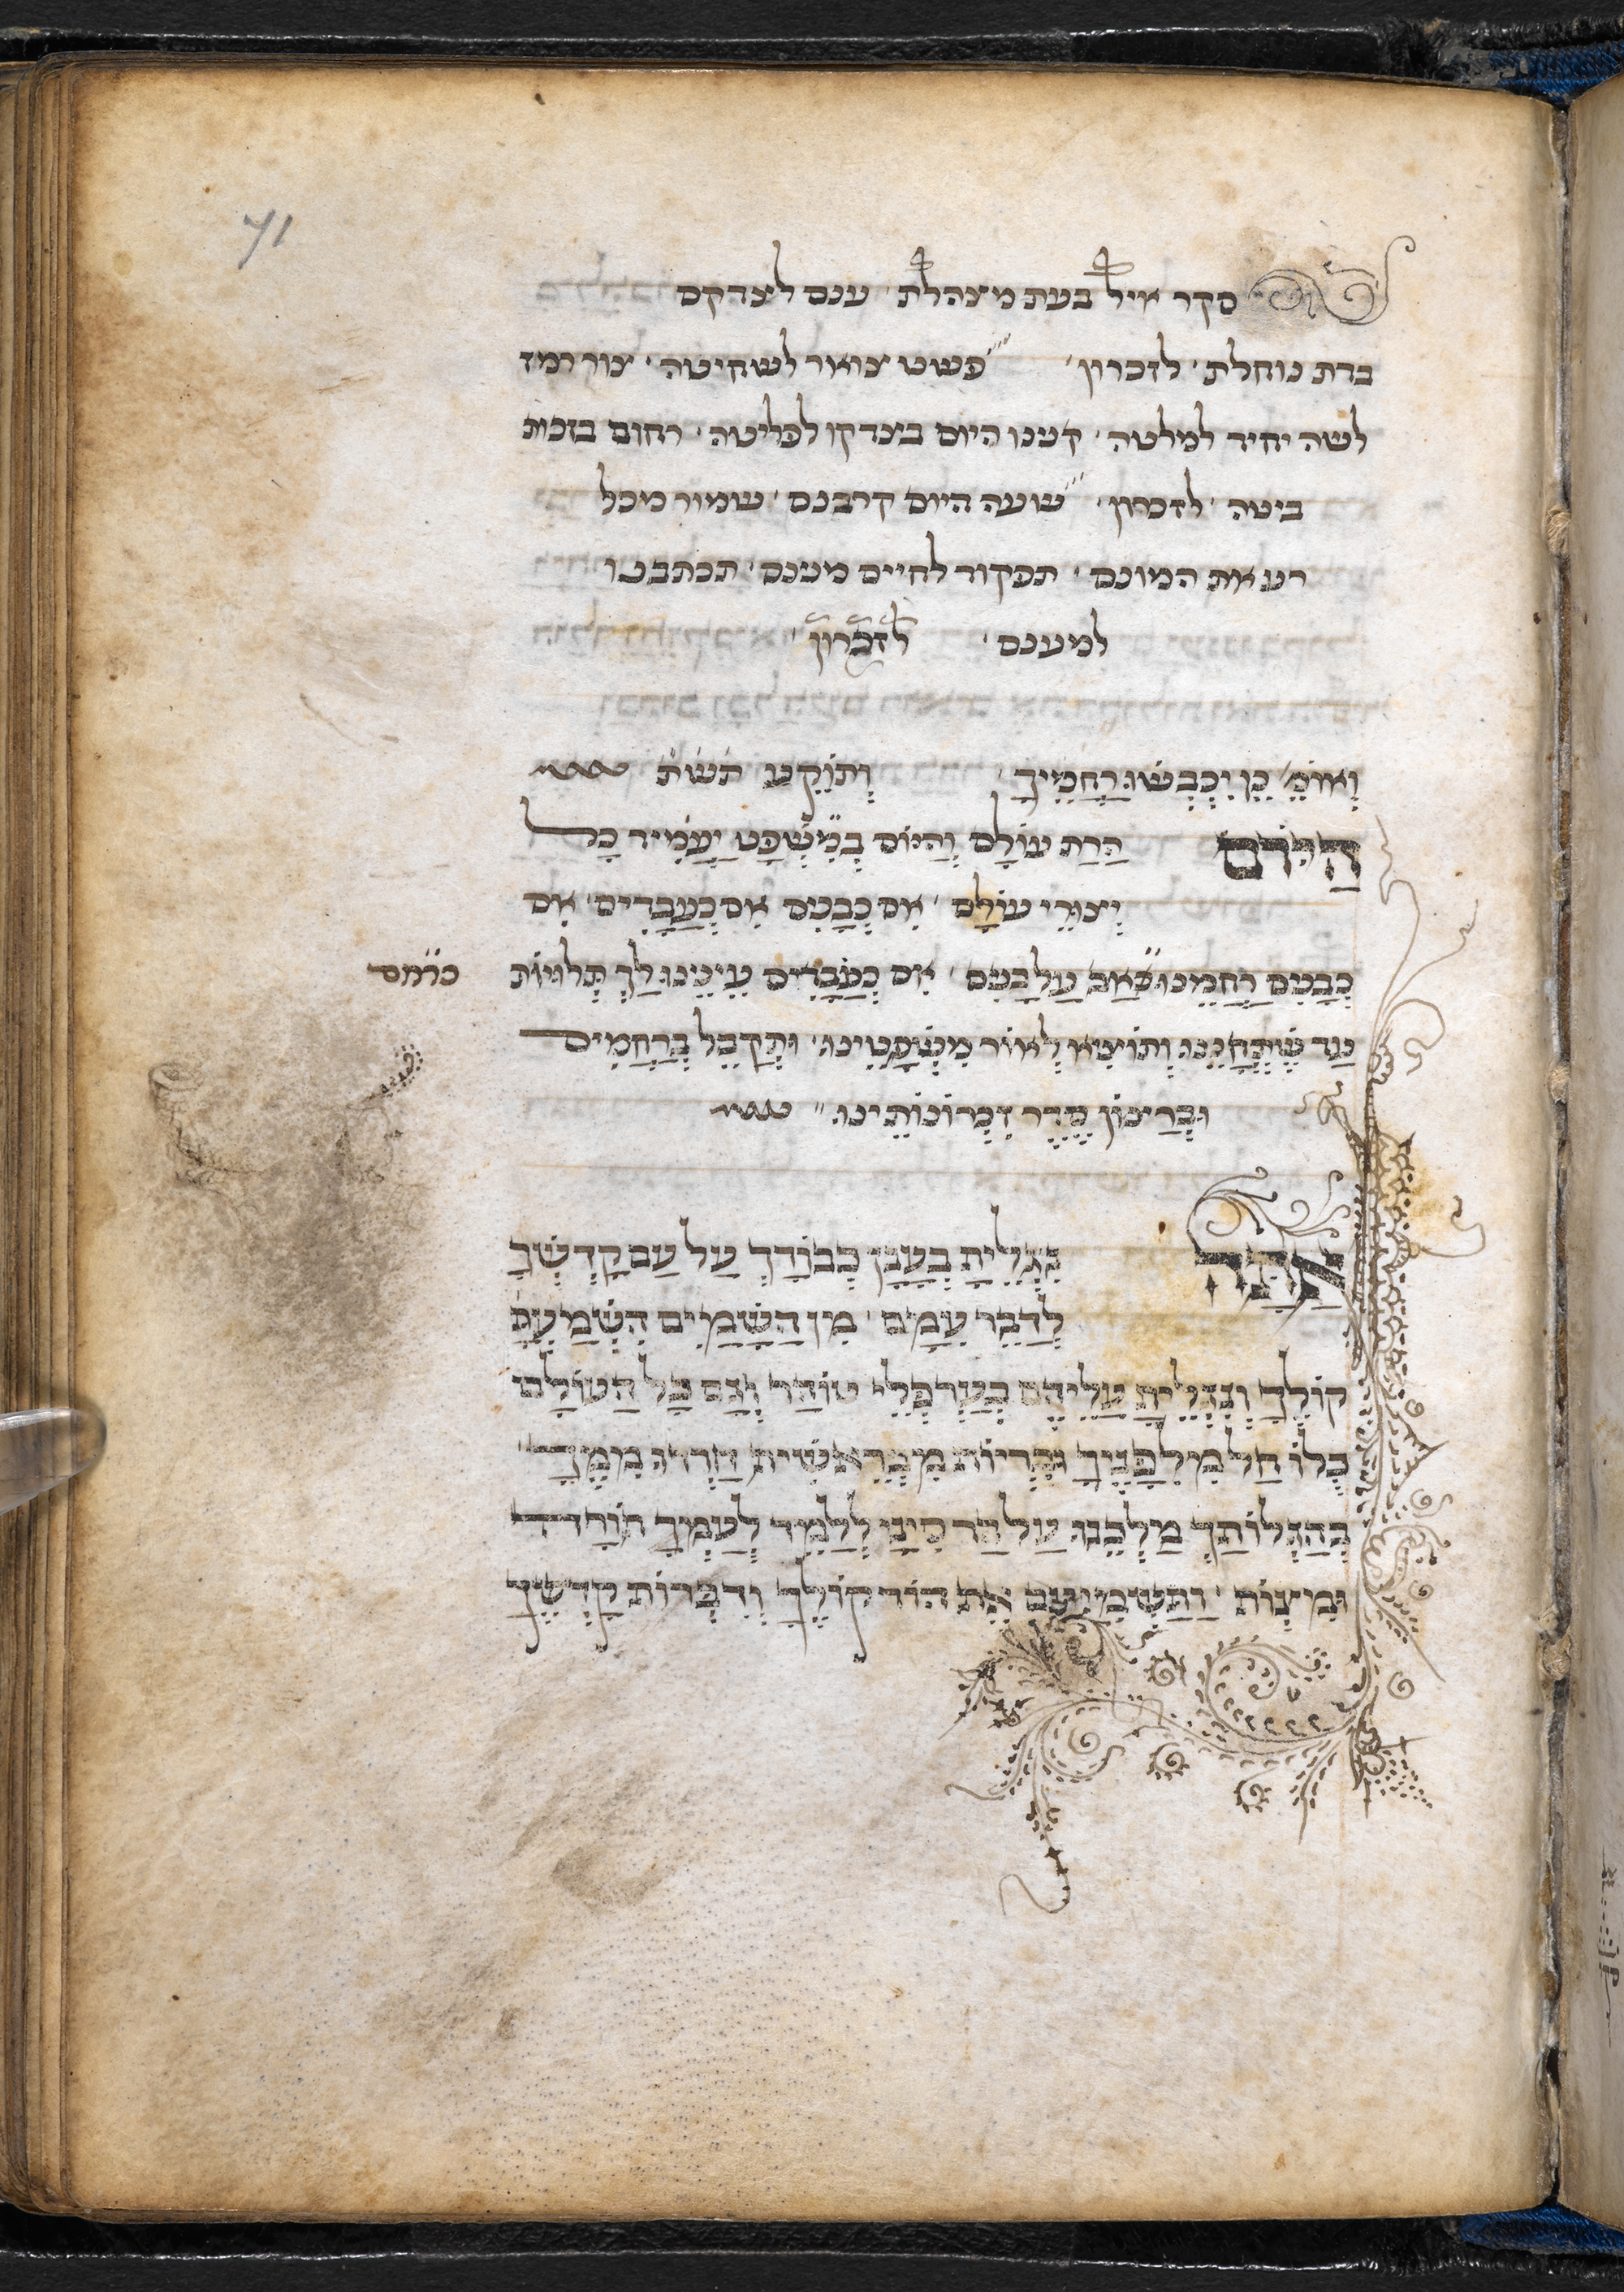 Full colour image, Add MS 26957, Hebrew Manuscripts Digitisation Project, British Library